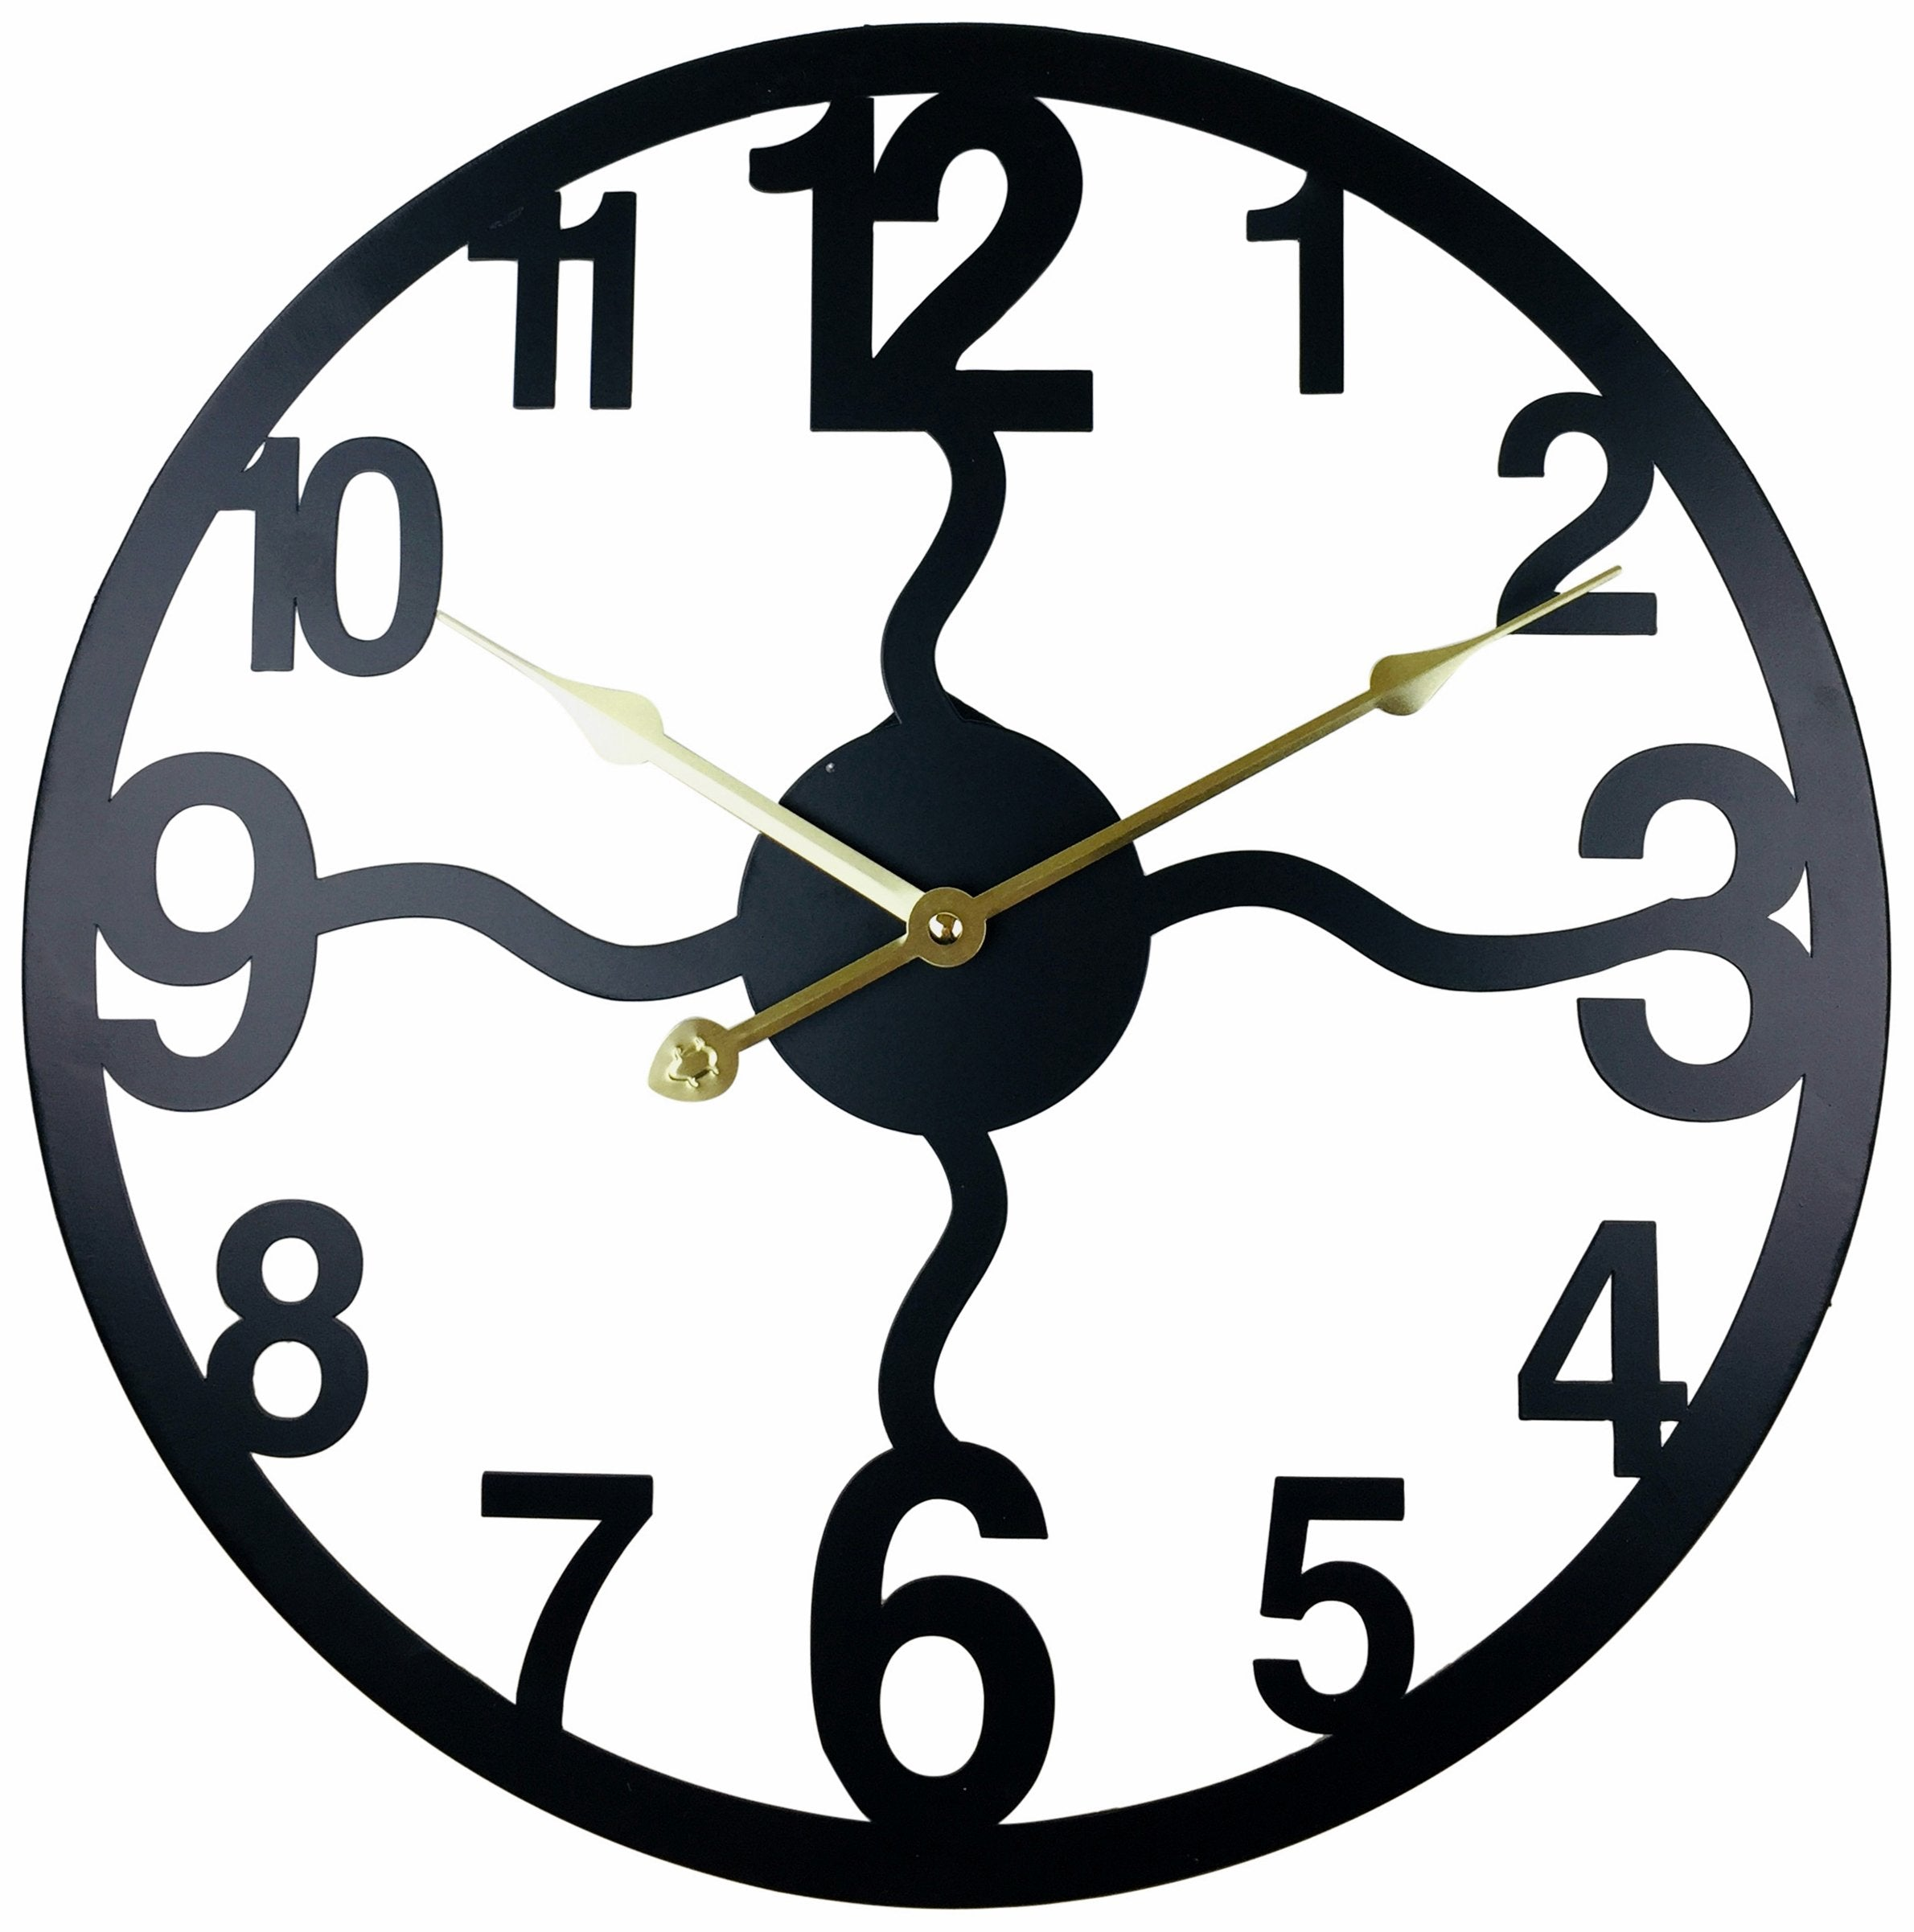 Black Metal Cut Out Wall Clock 40cm - Soap Scent & Home